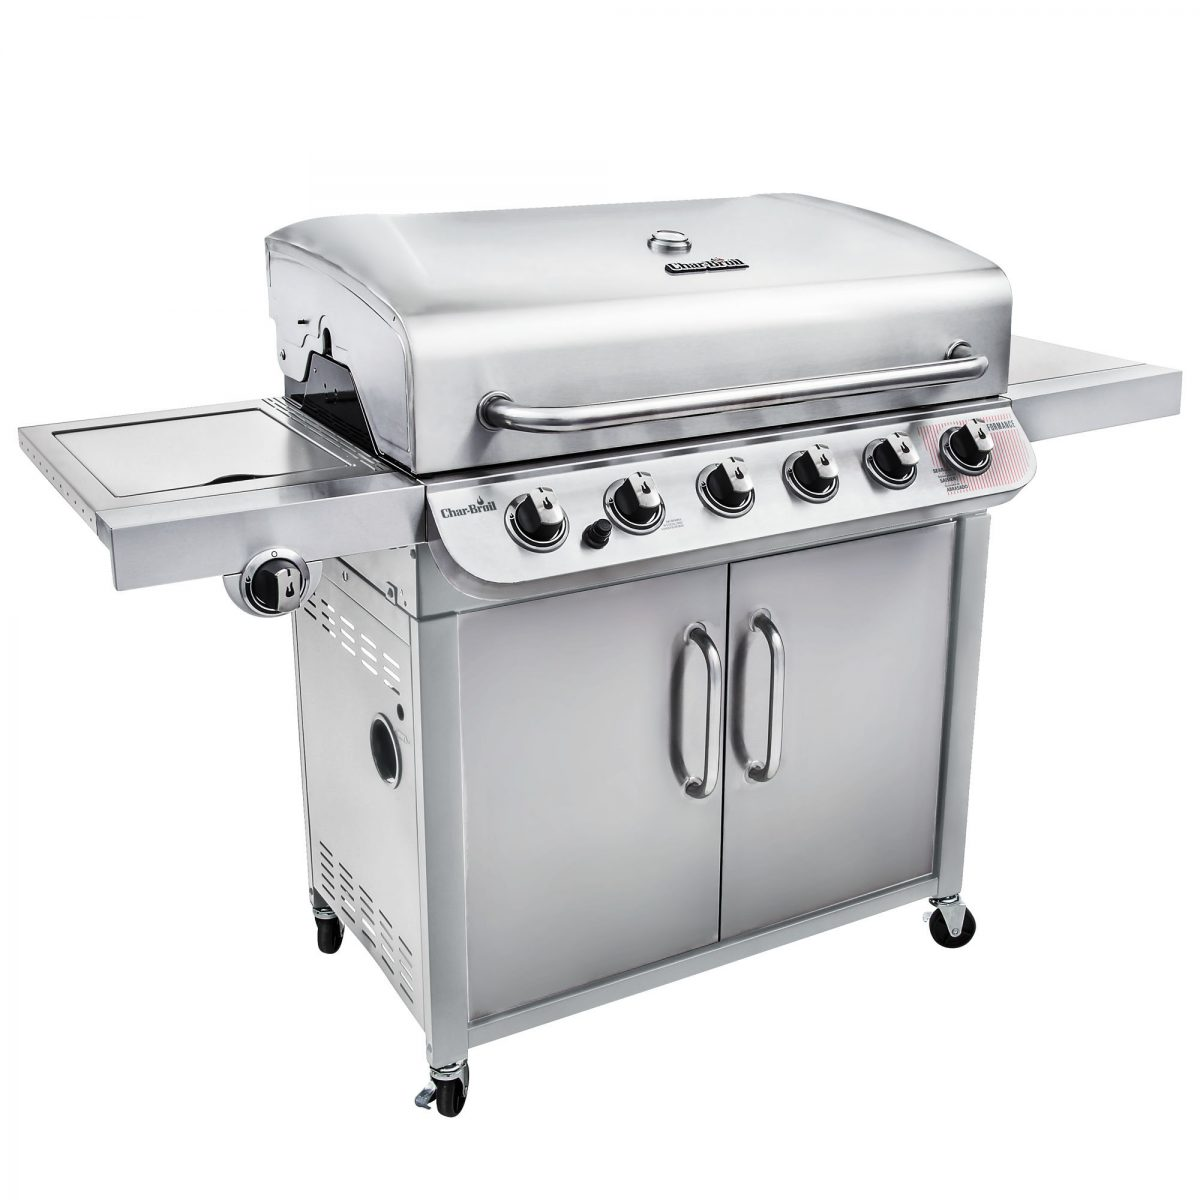 BJ's Save $70-$100 on these Char-Broil Gas Grills